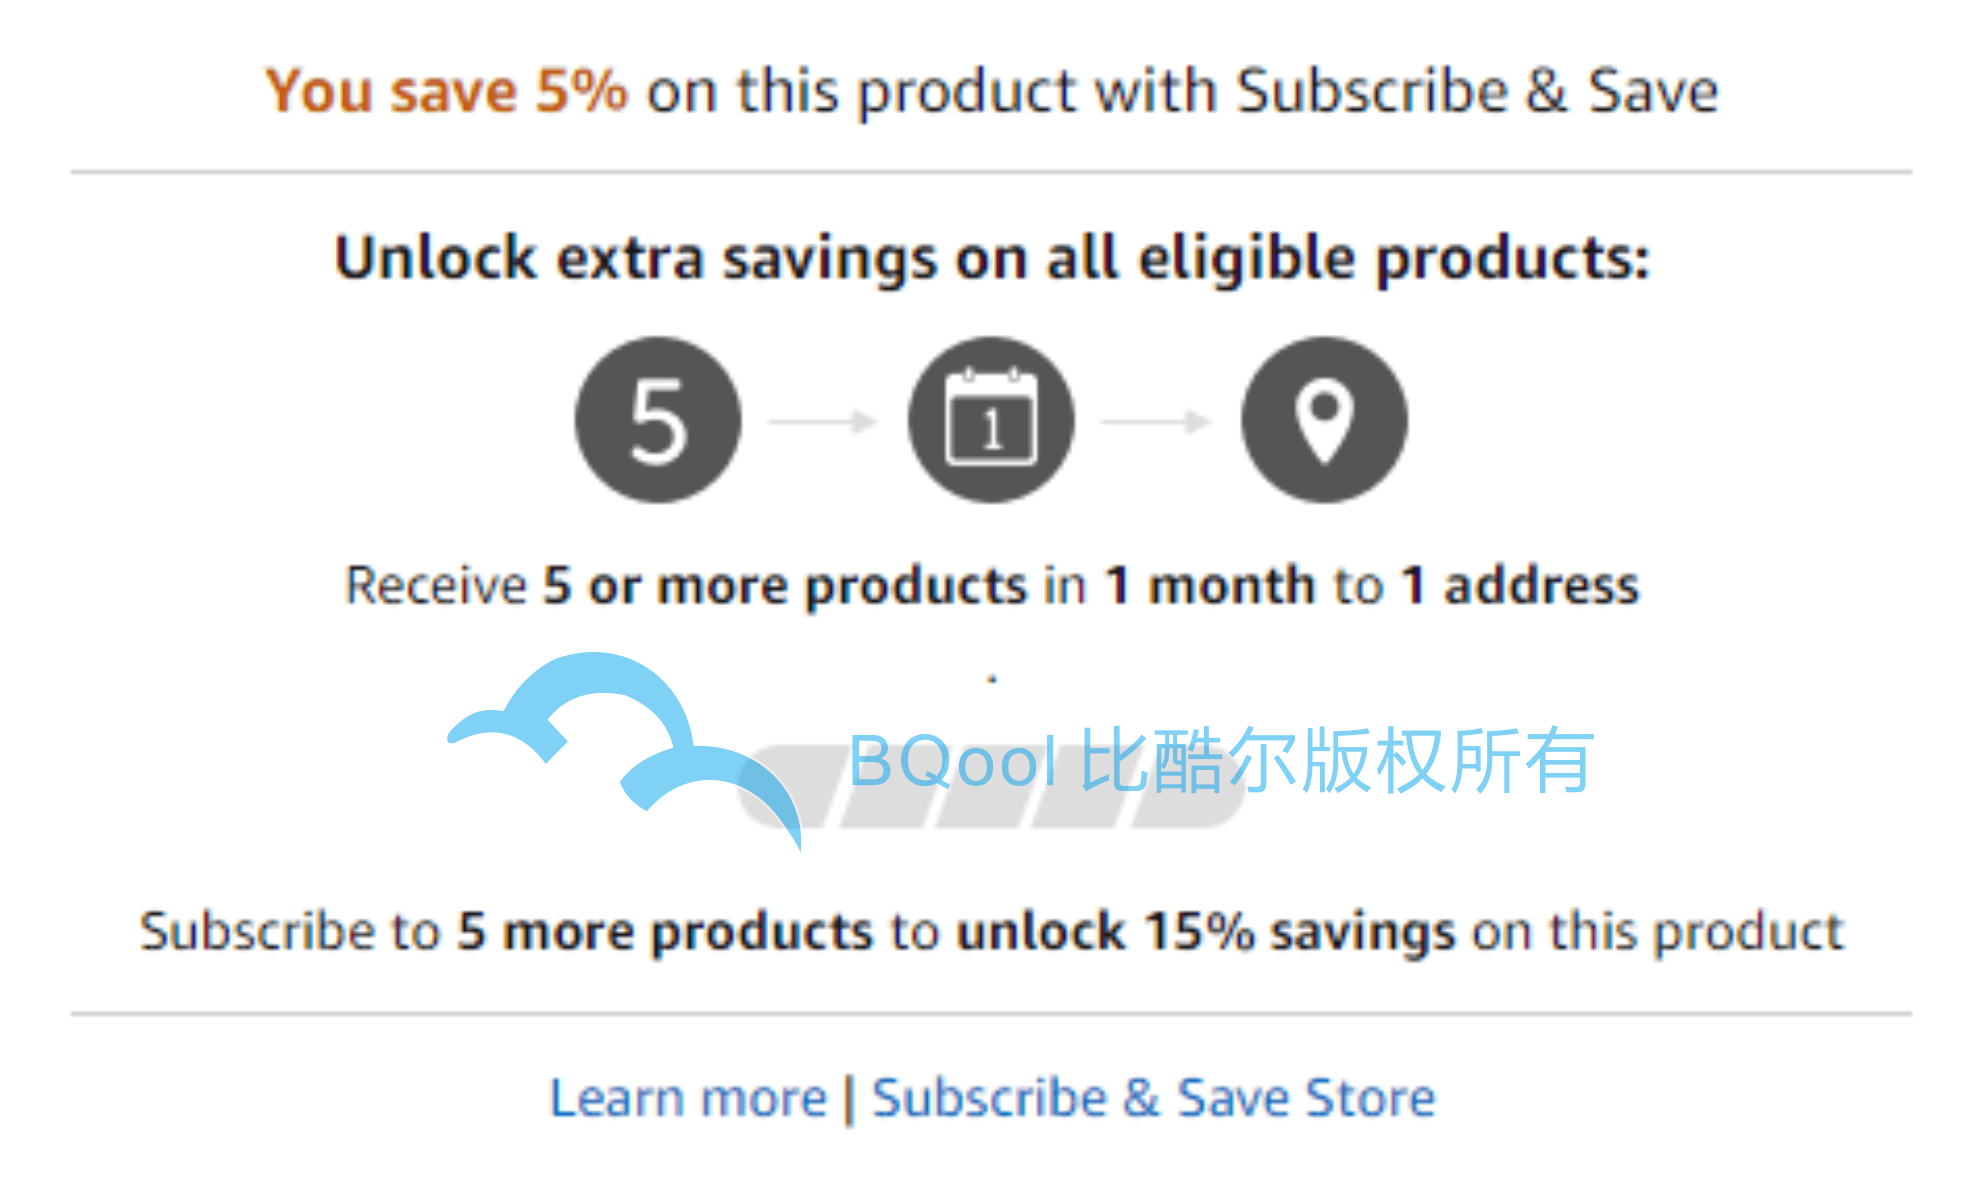 亚马逊 Subscribe Save 操作